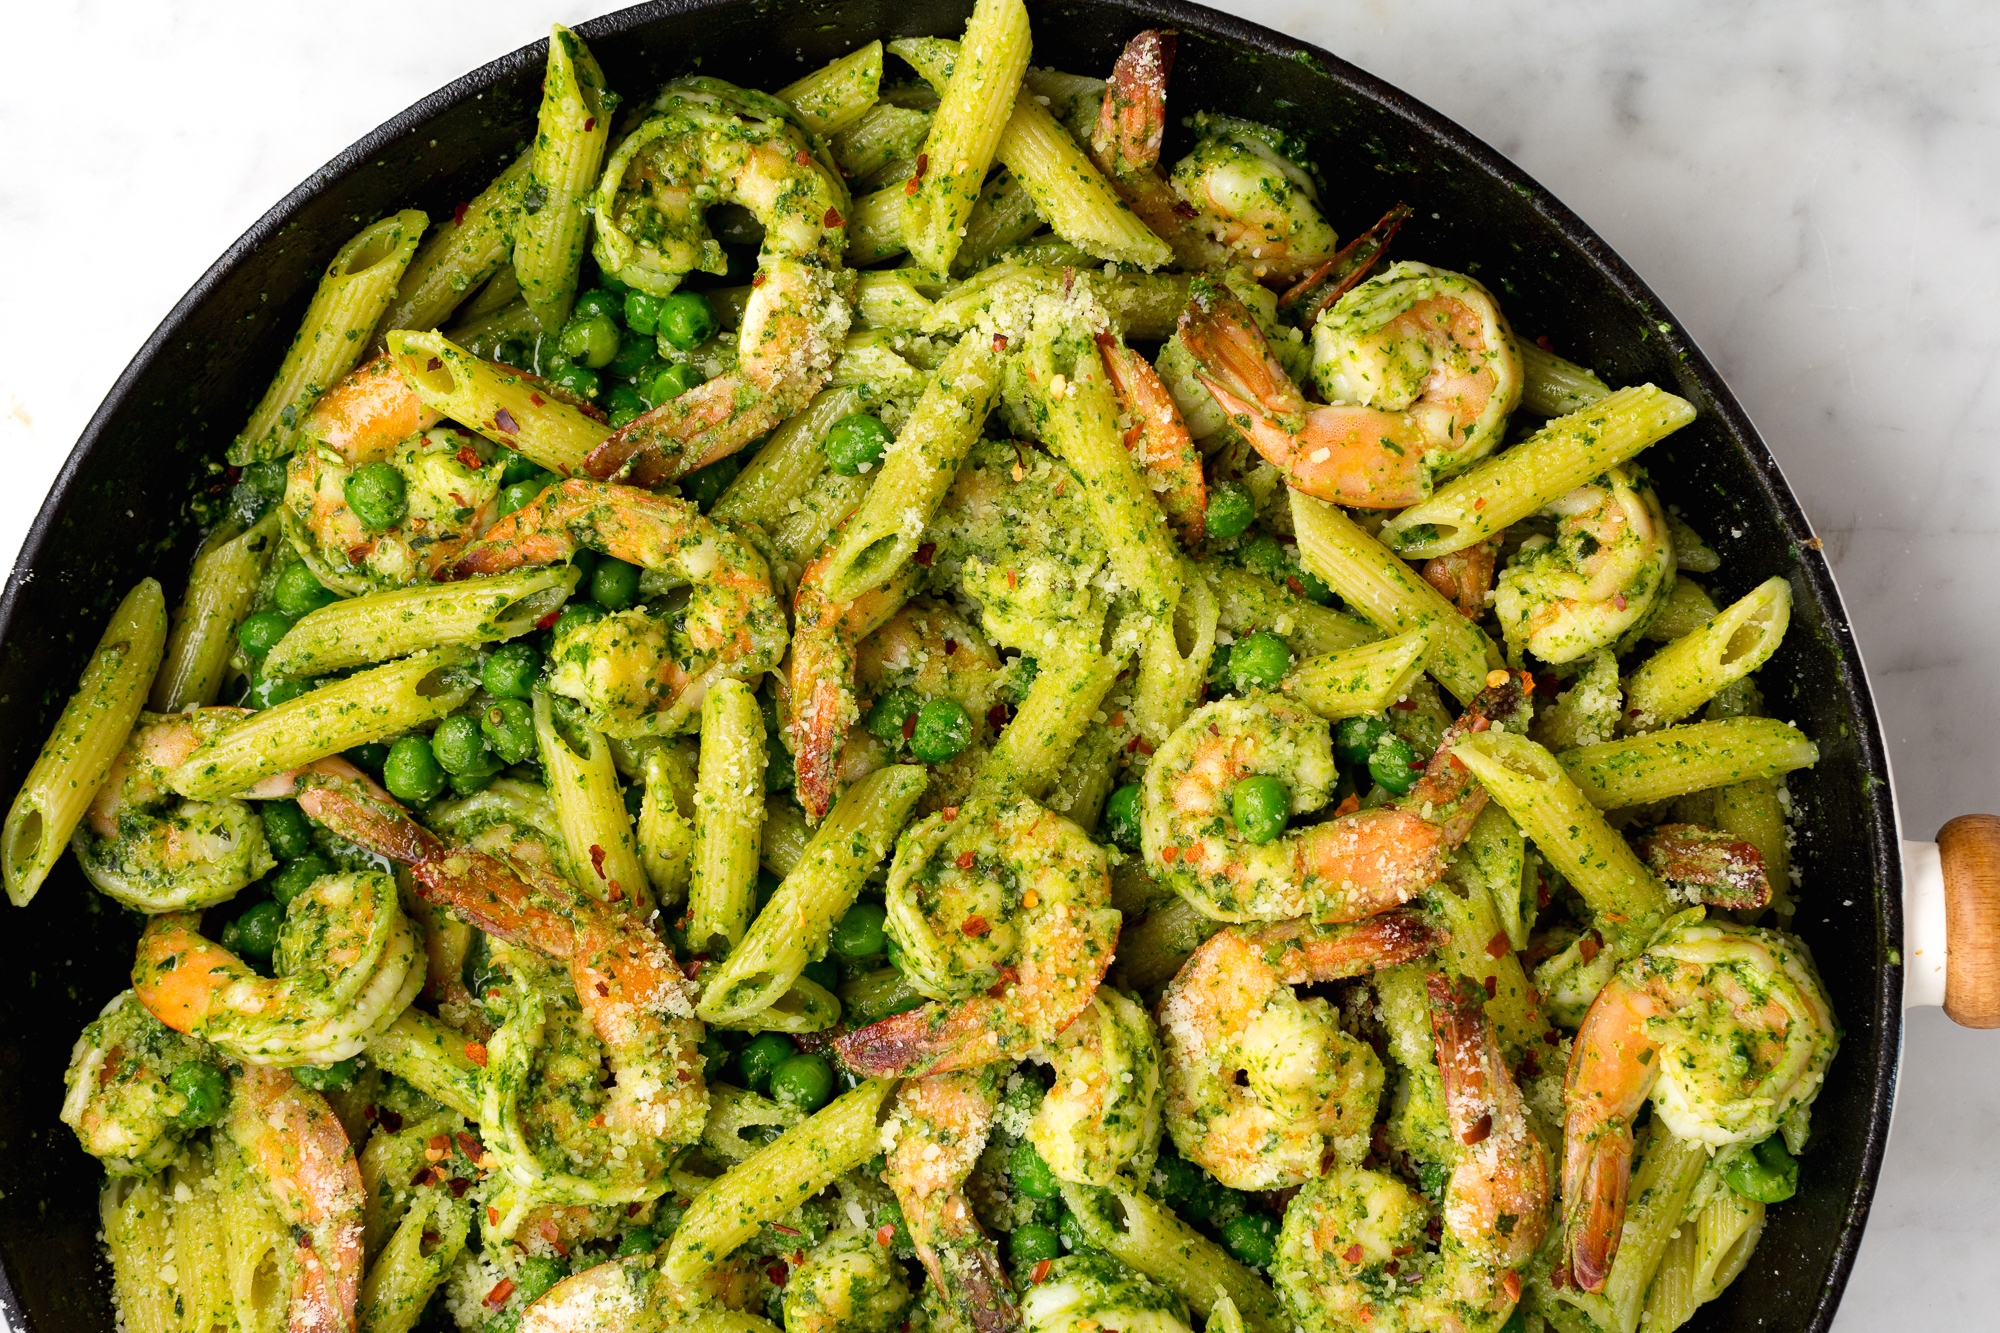 Spinach Pesto Penne with Shrimp and Peas Recipe - How to Make Spinach ...